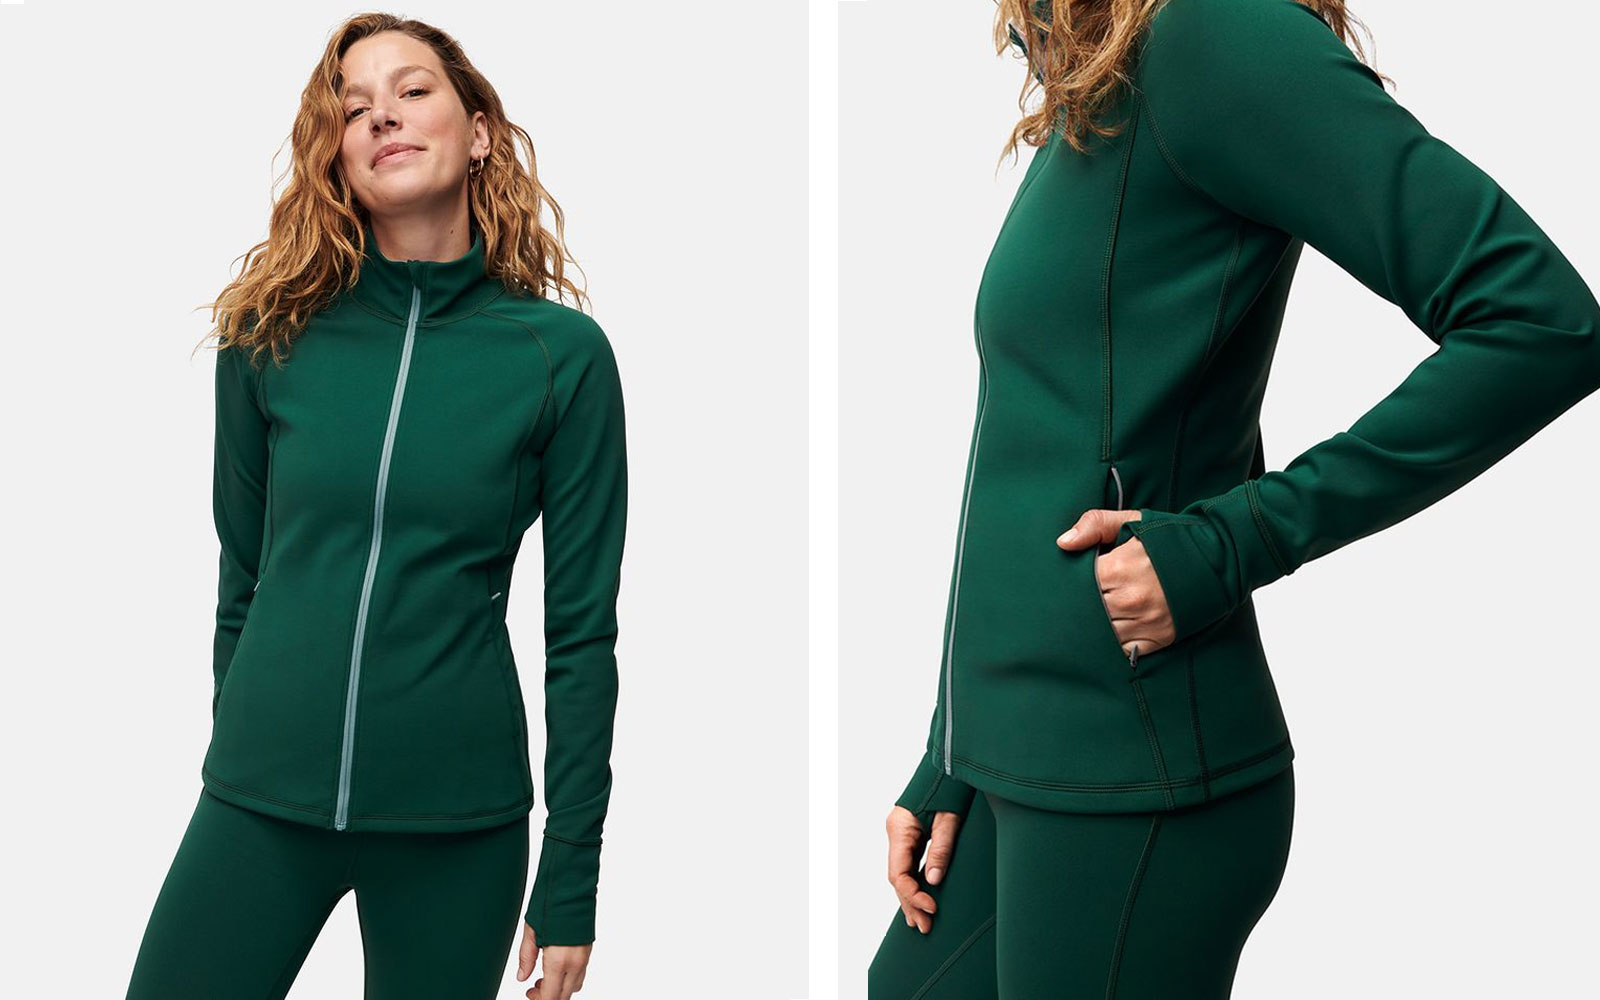 Women's Green Workout Jacket